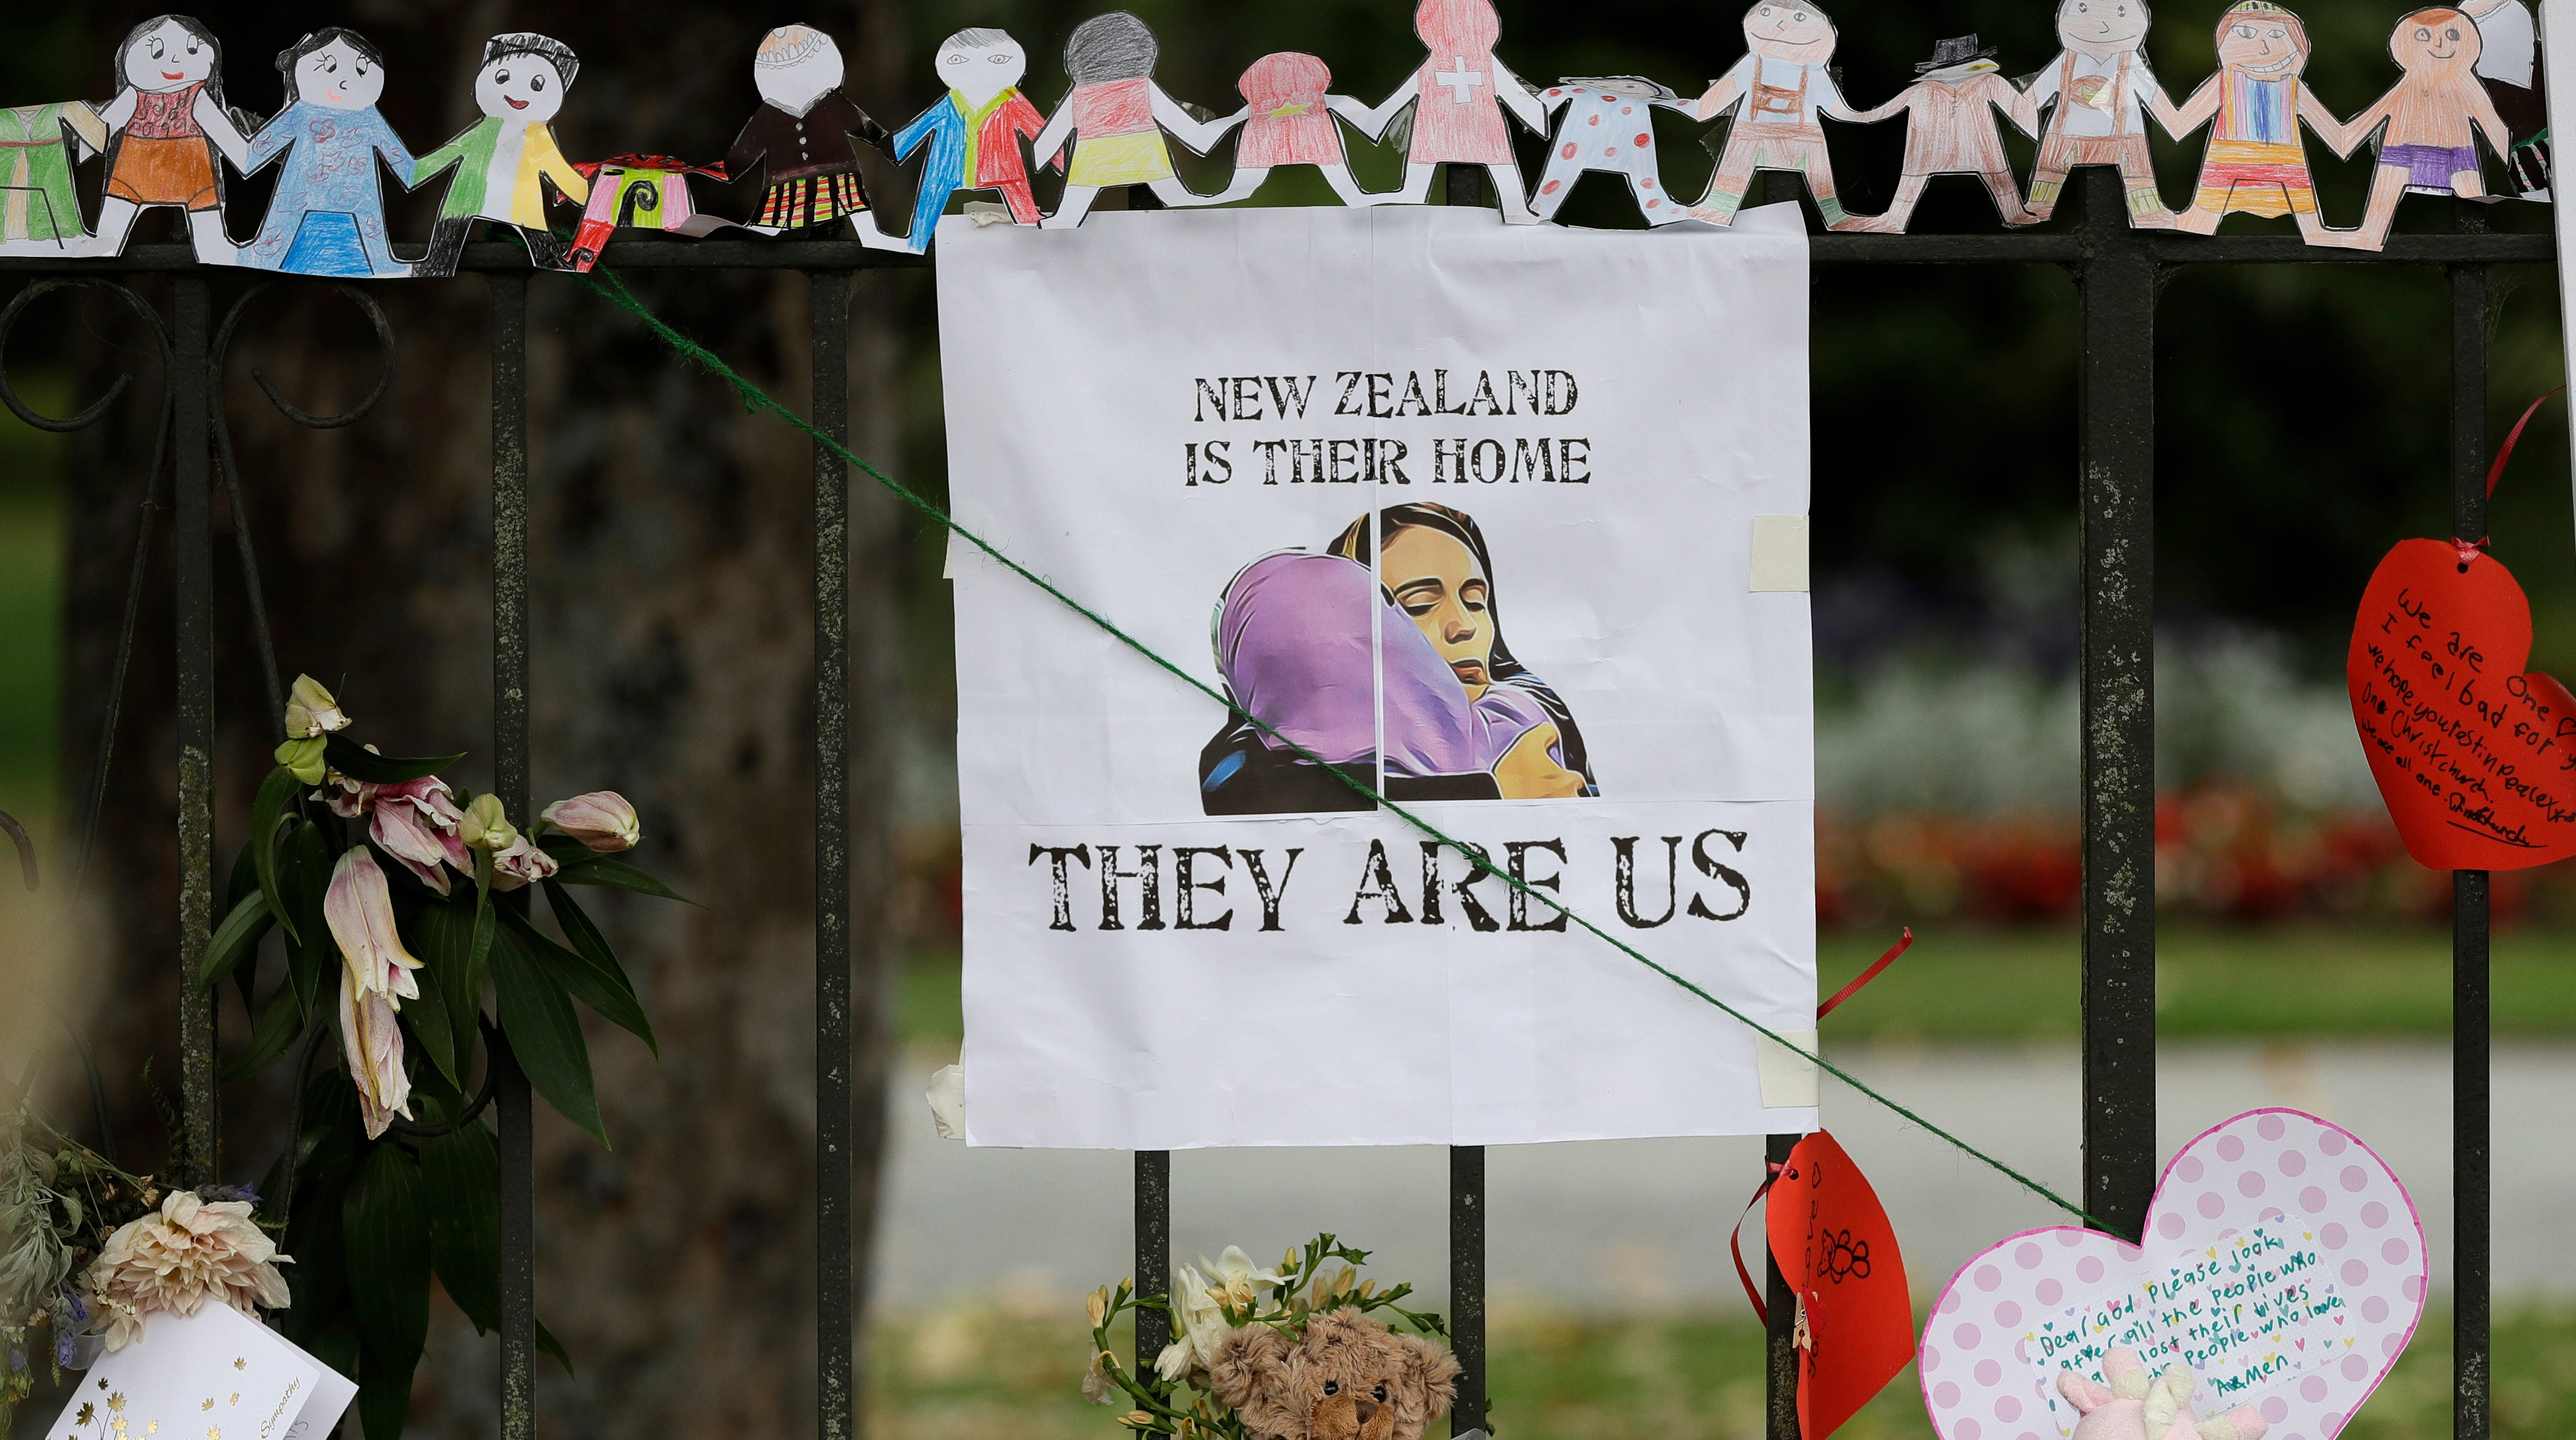 A poster featuring a drawing of Prime Minister Jacinda Ardern hangs on a wall at the Botanical Gardens in Christchurch, New Zealand, Thursday, March 21, 2019.